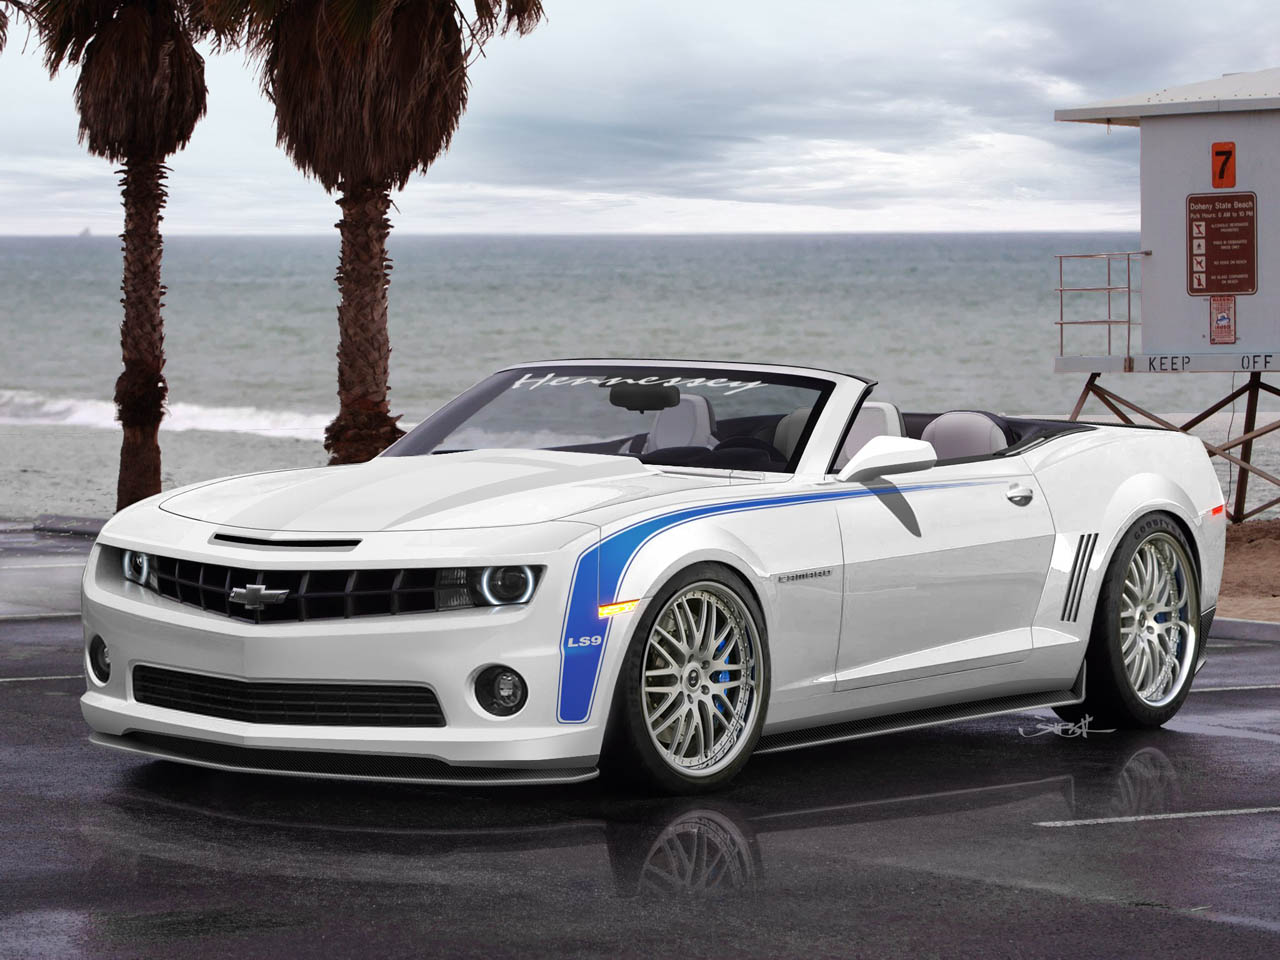 2011 HPE700 Camaro Convertible from Hennessey